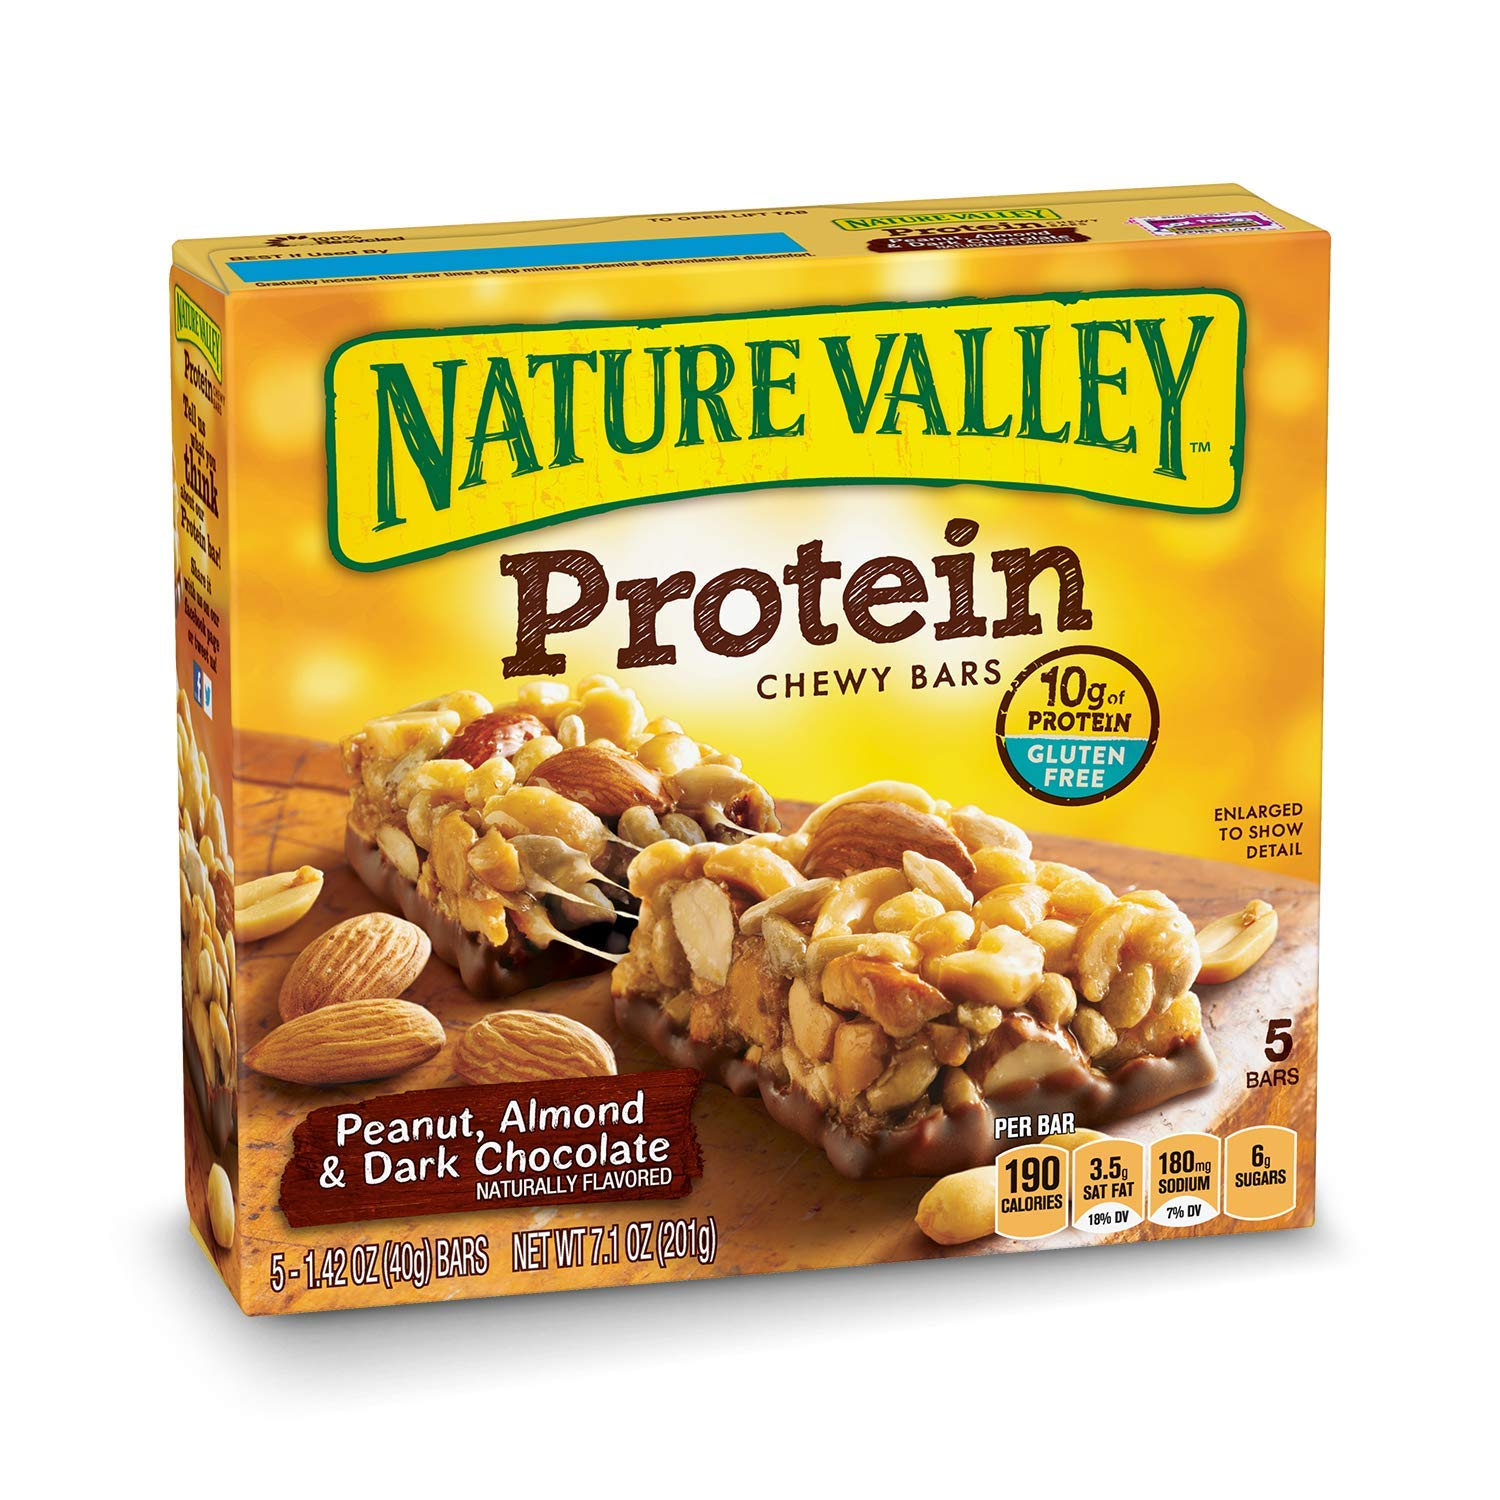 Nature Valley Chewy Granola Bar, Protein, Peanut, Almond and Dark Chocolate, Gluten Free (Pack of 6) by Nature Valley